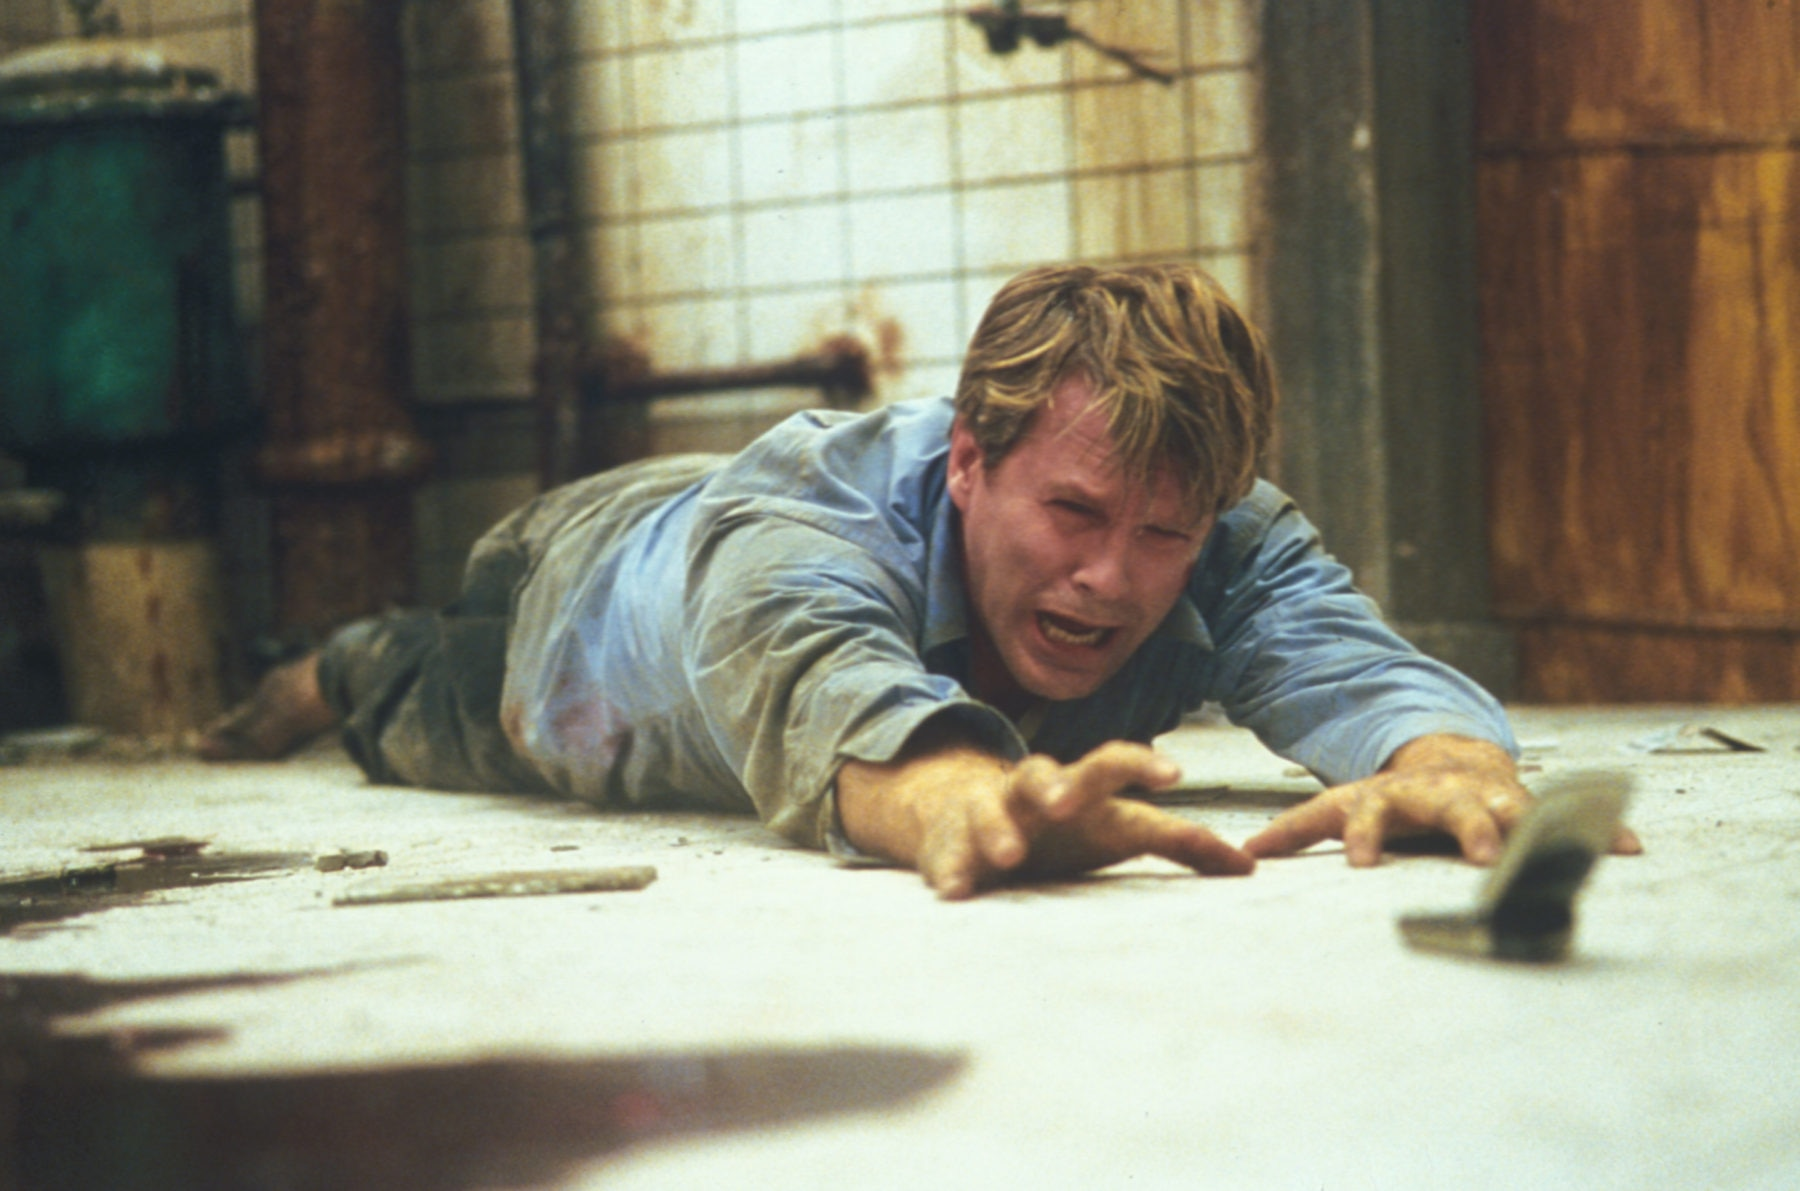 cary elwes saw e1560958221729 - This Day in Horror: Happy Birthday Cary Elwes